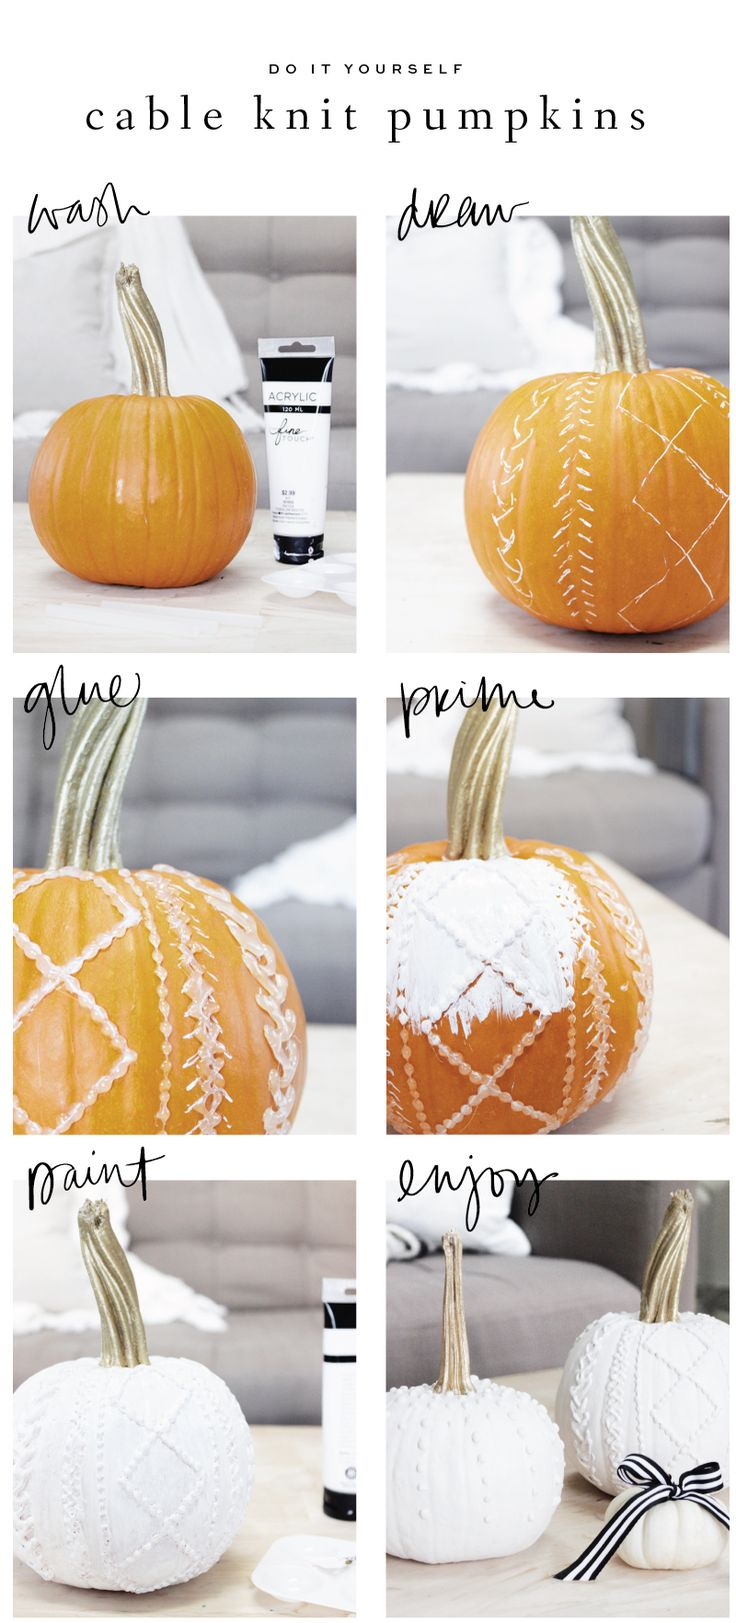 Black and White Cable Knit and Calligraphy Pumpkins : Saffron Avenue